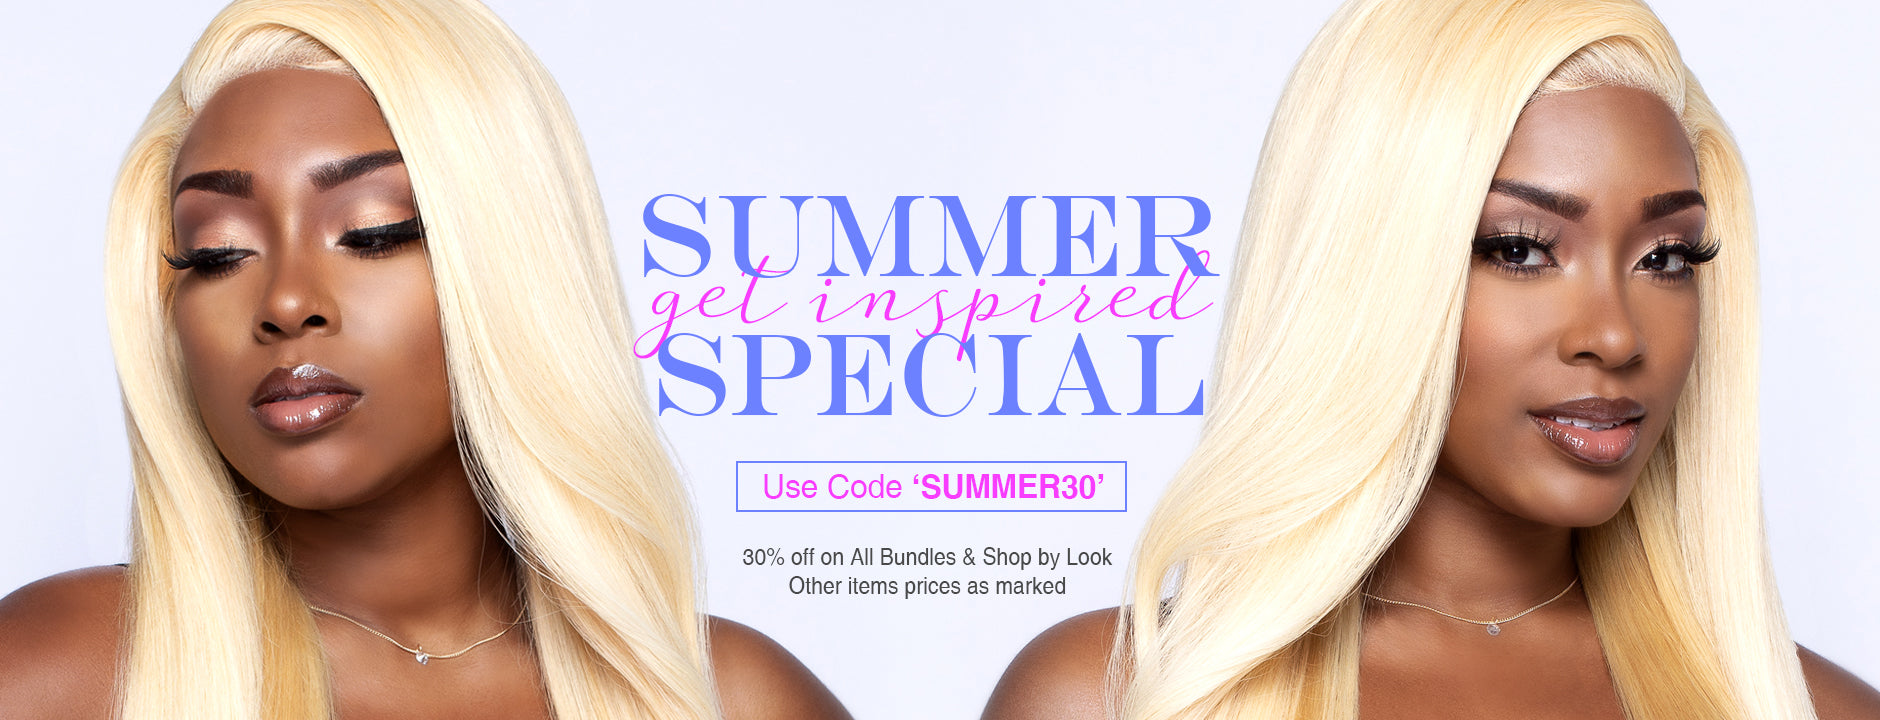 Bundle Hair, Closures, Frontals - Summer Sale - 30% OFF. Use this Promo Code: SUMMER30